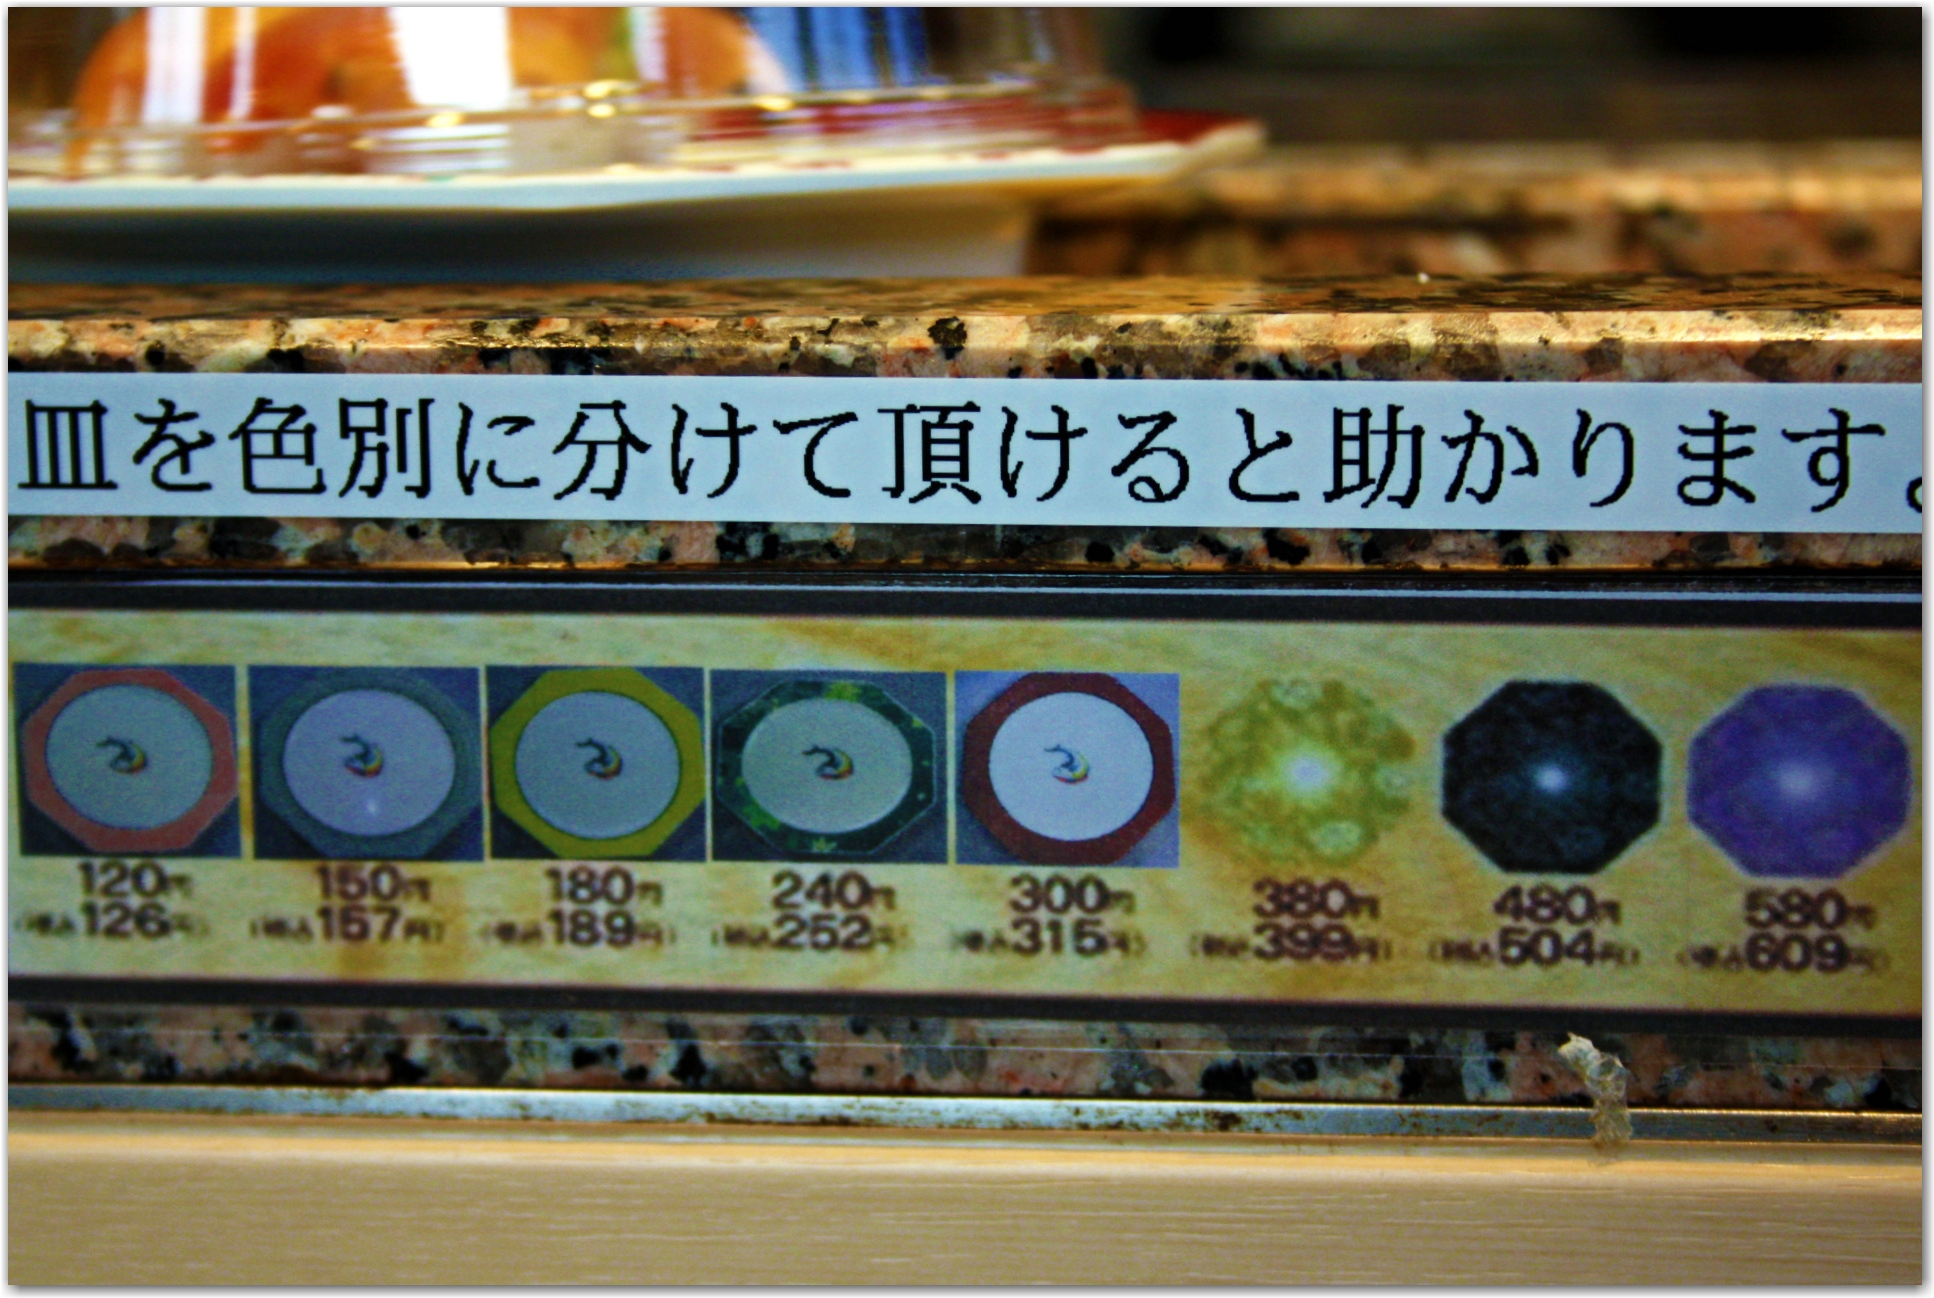 prices and plate colours at conveyor belt sushi